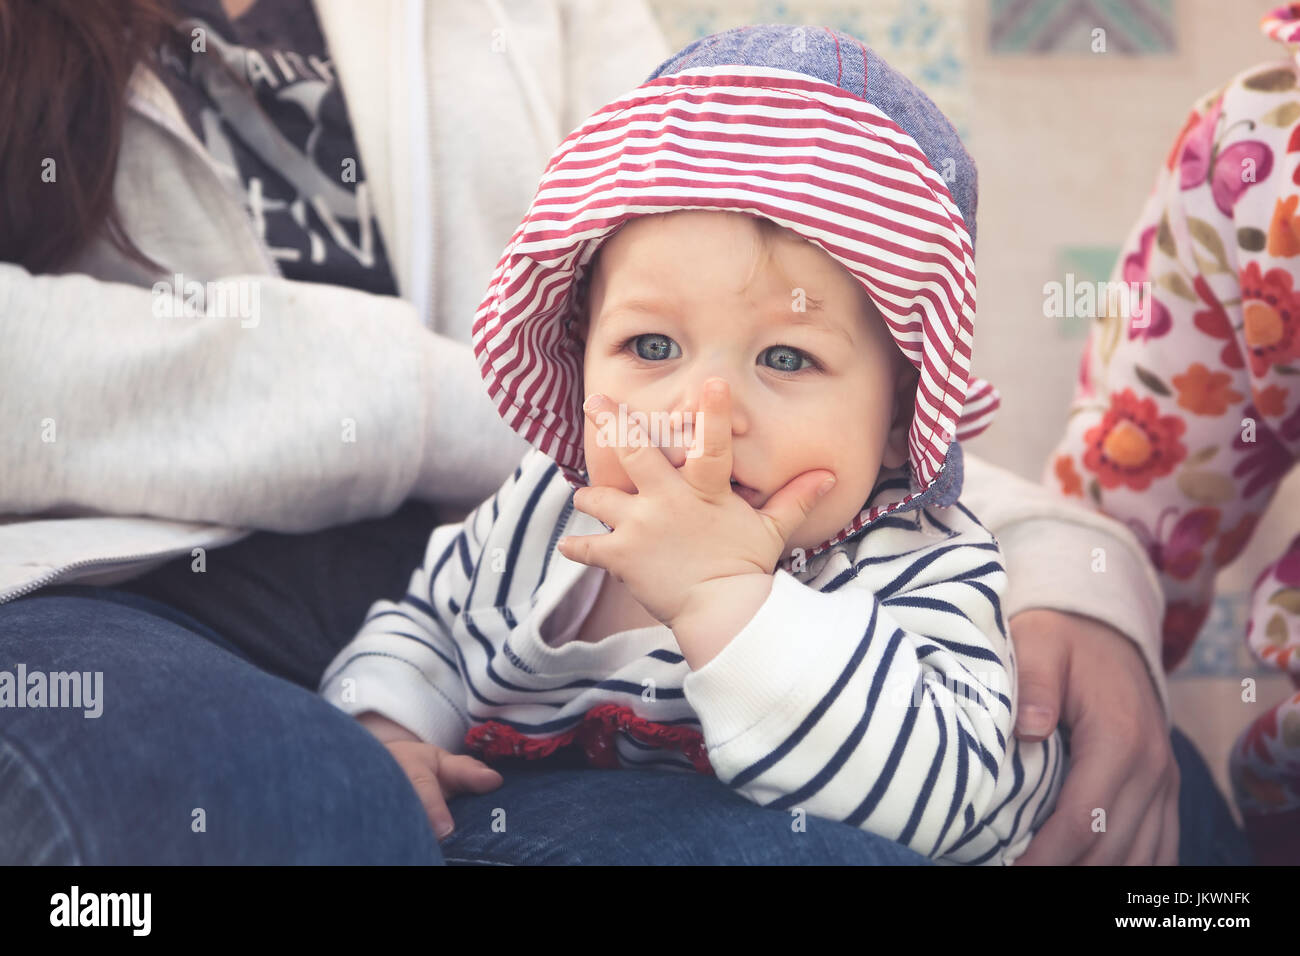 Child with surprised facial expression symbolizing unbelievable expression - Stock Image